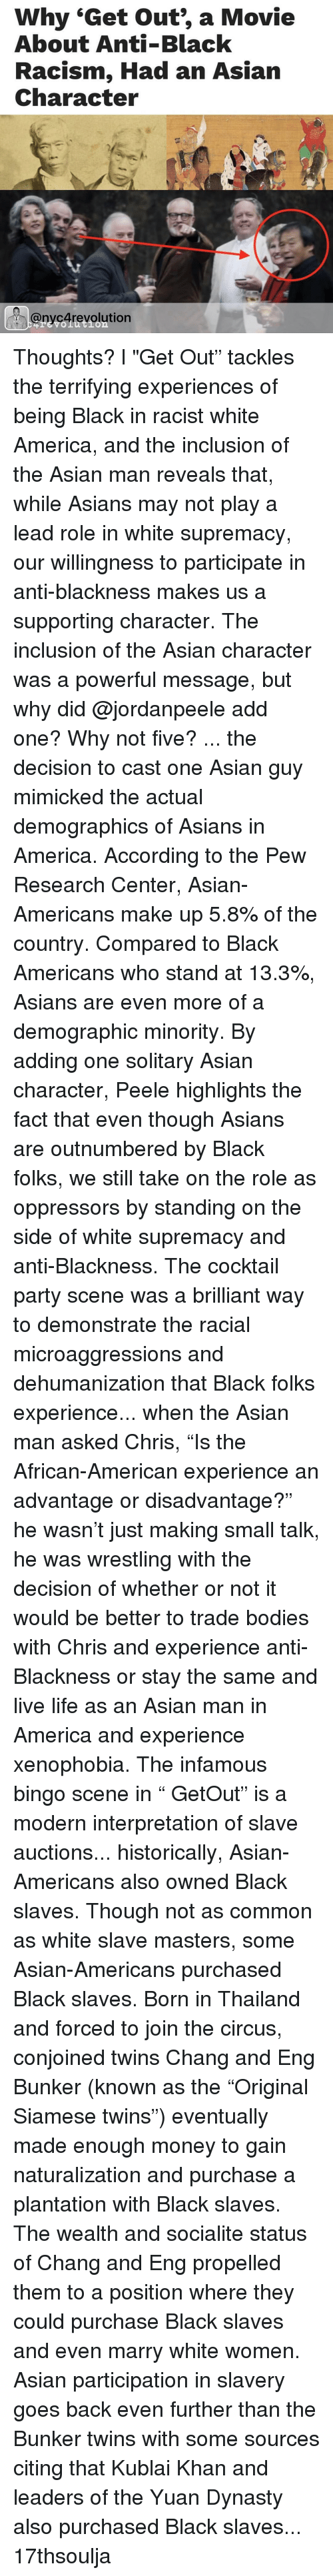 """Asian, Memes, and Thailand: Why """"Get out, a Movie  About Anti-Black  Racism, Had an Asian  Character  @nycArevolution Thoughts? l """"Get Out"""" tackles the terrifying experiences of being Black in racist white America, and the inclusion of the Asian man reveals that, while Asians may not play a lead role in white supremacy, our willingness to participate in anti-blackness makes us a supporting character. The inclusion of the Asian character was a powerful message, but why did @jordanpeele add one? Why not five? ... the decision to cast one Asian guy mimicked the actual demographics of Asians in America. According to the Pew Research Center, Asian-Americans make up 5.8% of the country. Compared to Black Americans who stand at 13.3%, Asians are even more of a demographic minority. By adding one solitary Asian character, Peele highlights the fact that even though Asians are outnumbered by Black folks, we still take on the role as oppressors by standing on the side of white supremacy and anti-Blackness. The cocktail party scene was a brilliant way to demonstrate the racial microaggressions and dehumanization that Black folks experience... when the Asian man asked Chris, """"Is the African-American experience an advantage or disadvantage?"""" he wasn't just making small talk, he was wrestling with the decision of whether or not it would be better to trade bodies with Chris and experience anti-Blackness or stay the same and live life as an Asian man in America and experience xenophobia. The infamous bingo scene in """" GetOut"""" is a modern interpretation of slave auctions... historically, Asian-Americans also owned Black slaves. Though not as common as white slave masters, some Asian-Americans purchased Black slaves. Born in Thailand and forced to join the circus, conjoined twins Chang and Eng Bunker (known as the """"Original Siamese twins"""") eventually made enough money to gain naturalization and purchase a plantation with Black slaves. The wealth and socialite status of Chang and Eng pr"""